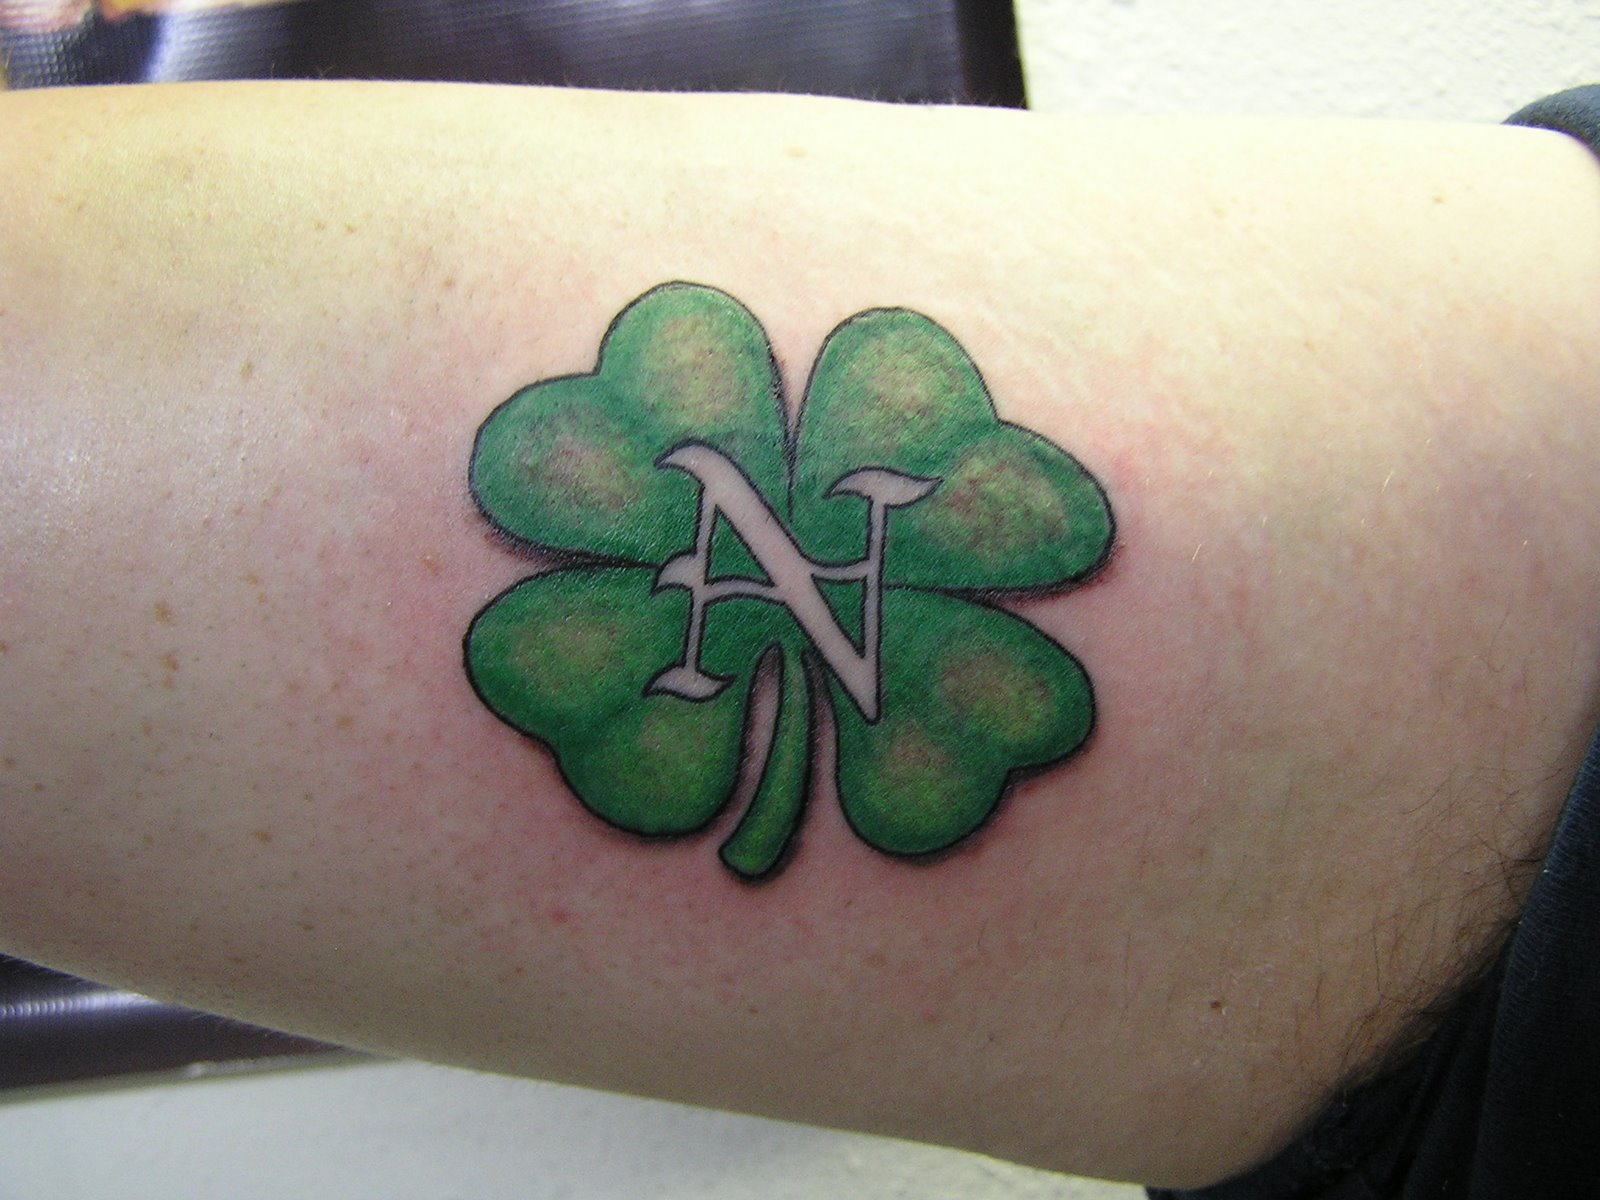 Four Leaf Clover Tattoos Designs Ideas And Meaning Ideas And Designs